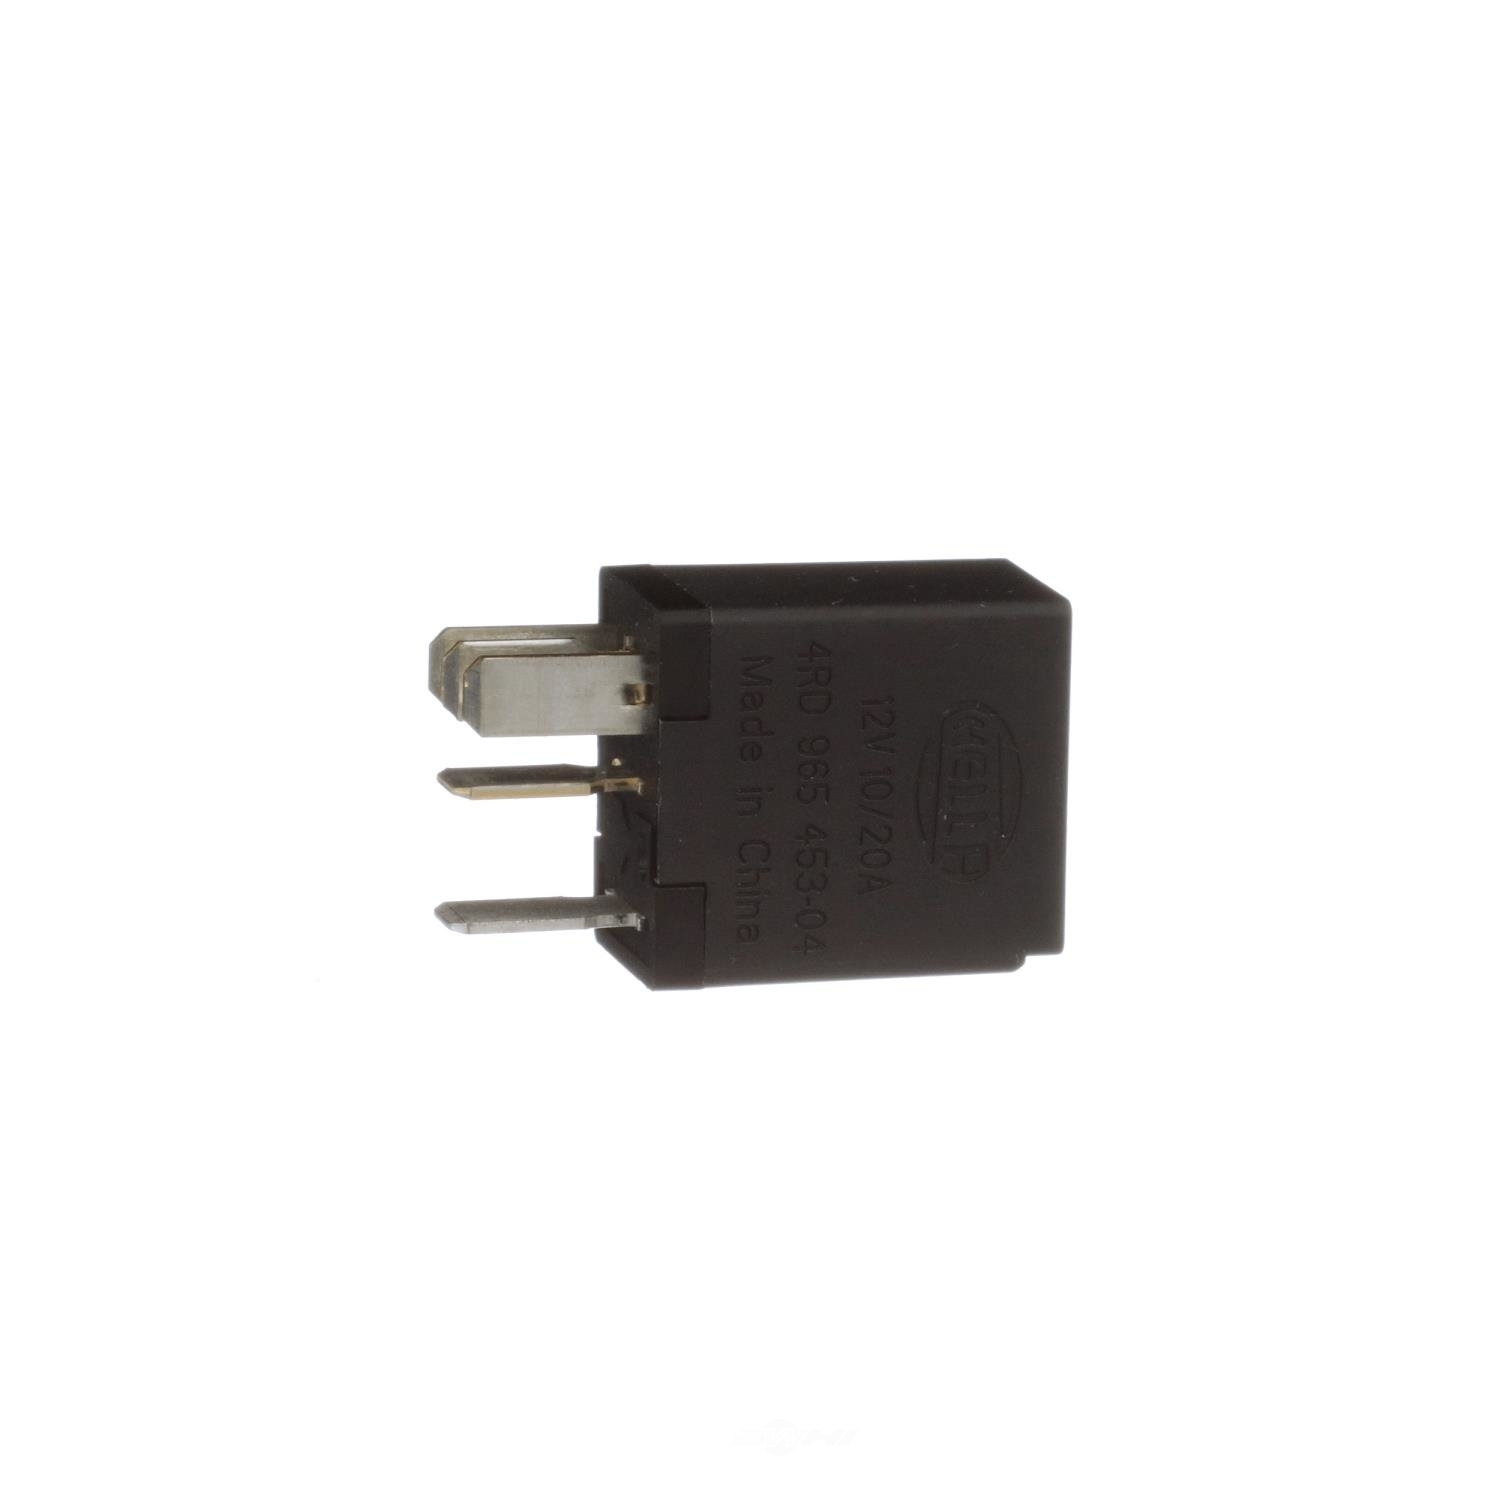 STANDARD MOTOR PRODUCTS - Starter Relay - STA RY-577